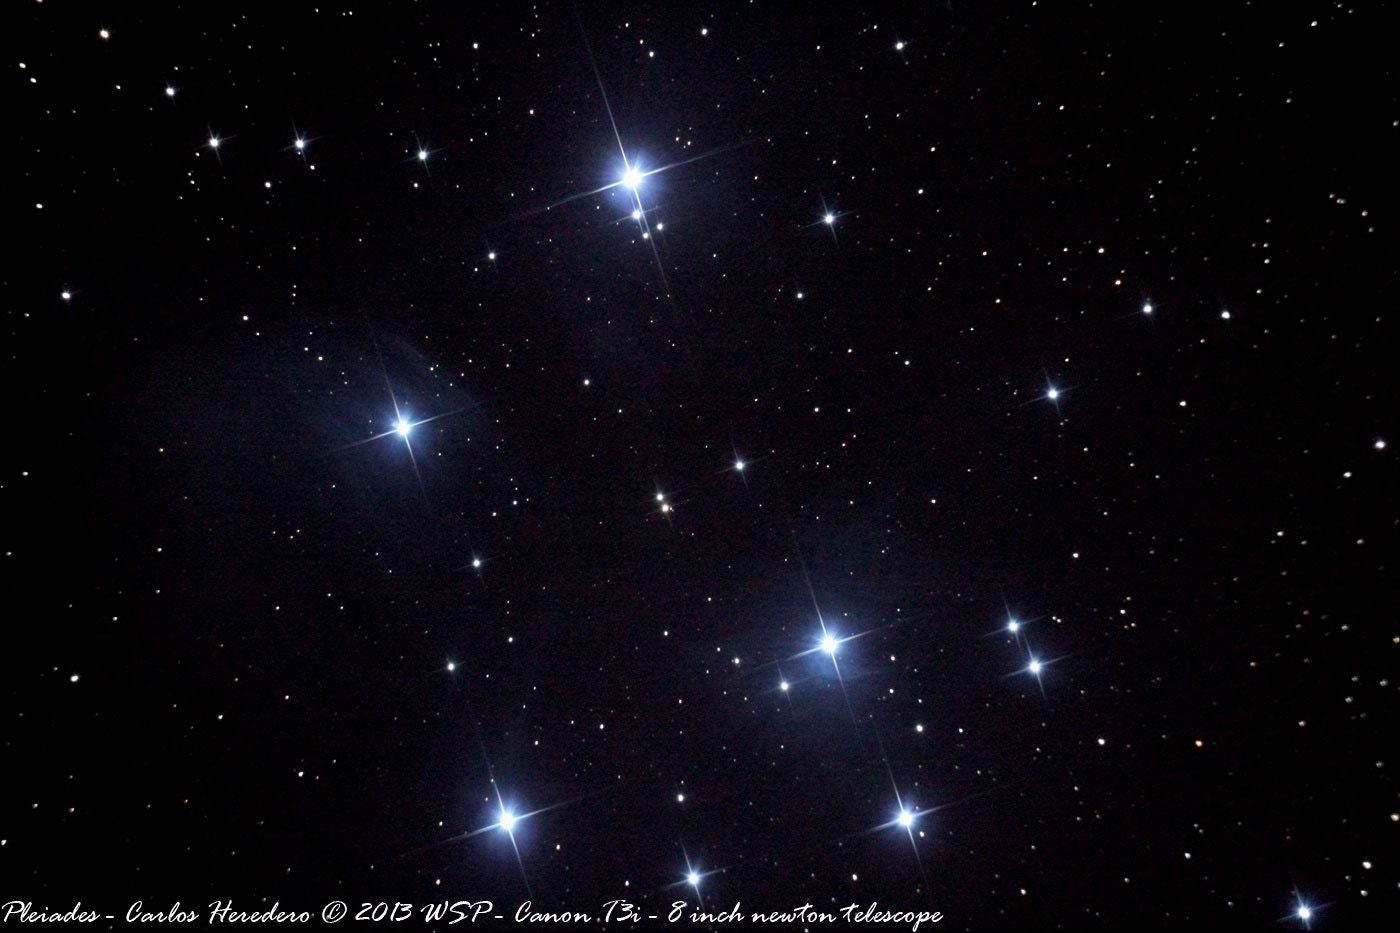 Photograph Pleiades (Subaru or Seven Sisters) by Carlos Heredero on 500px